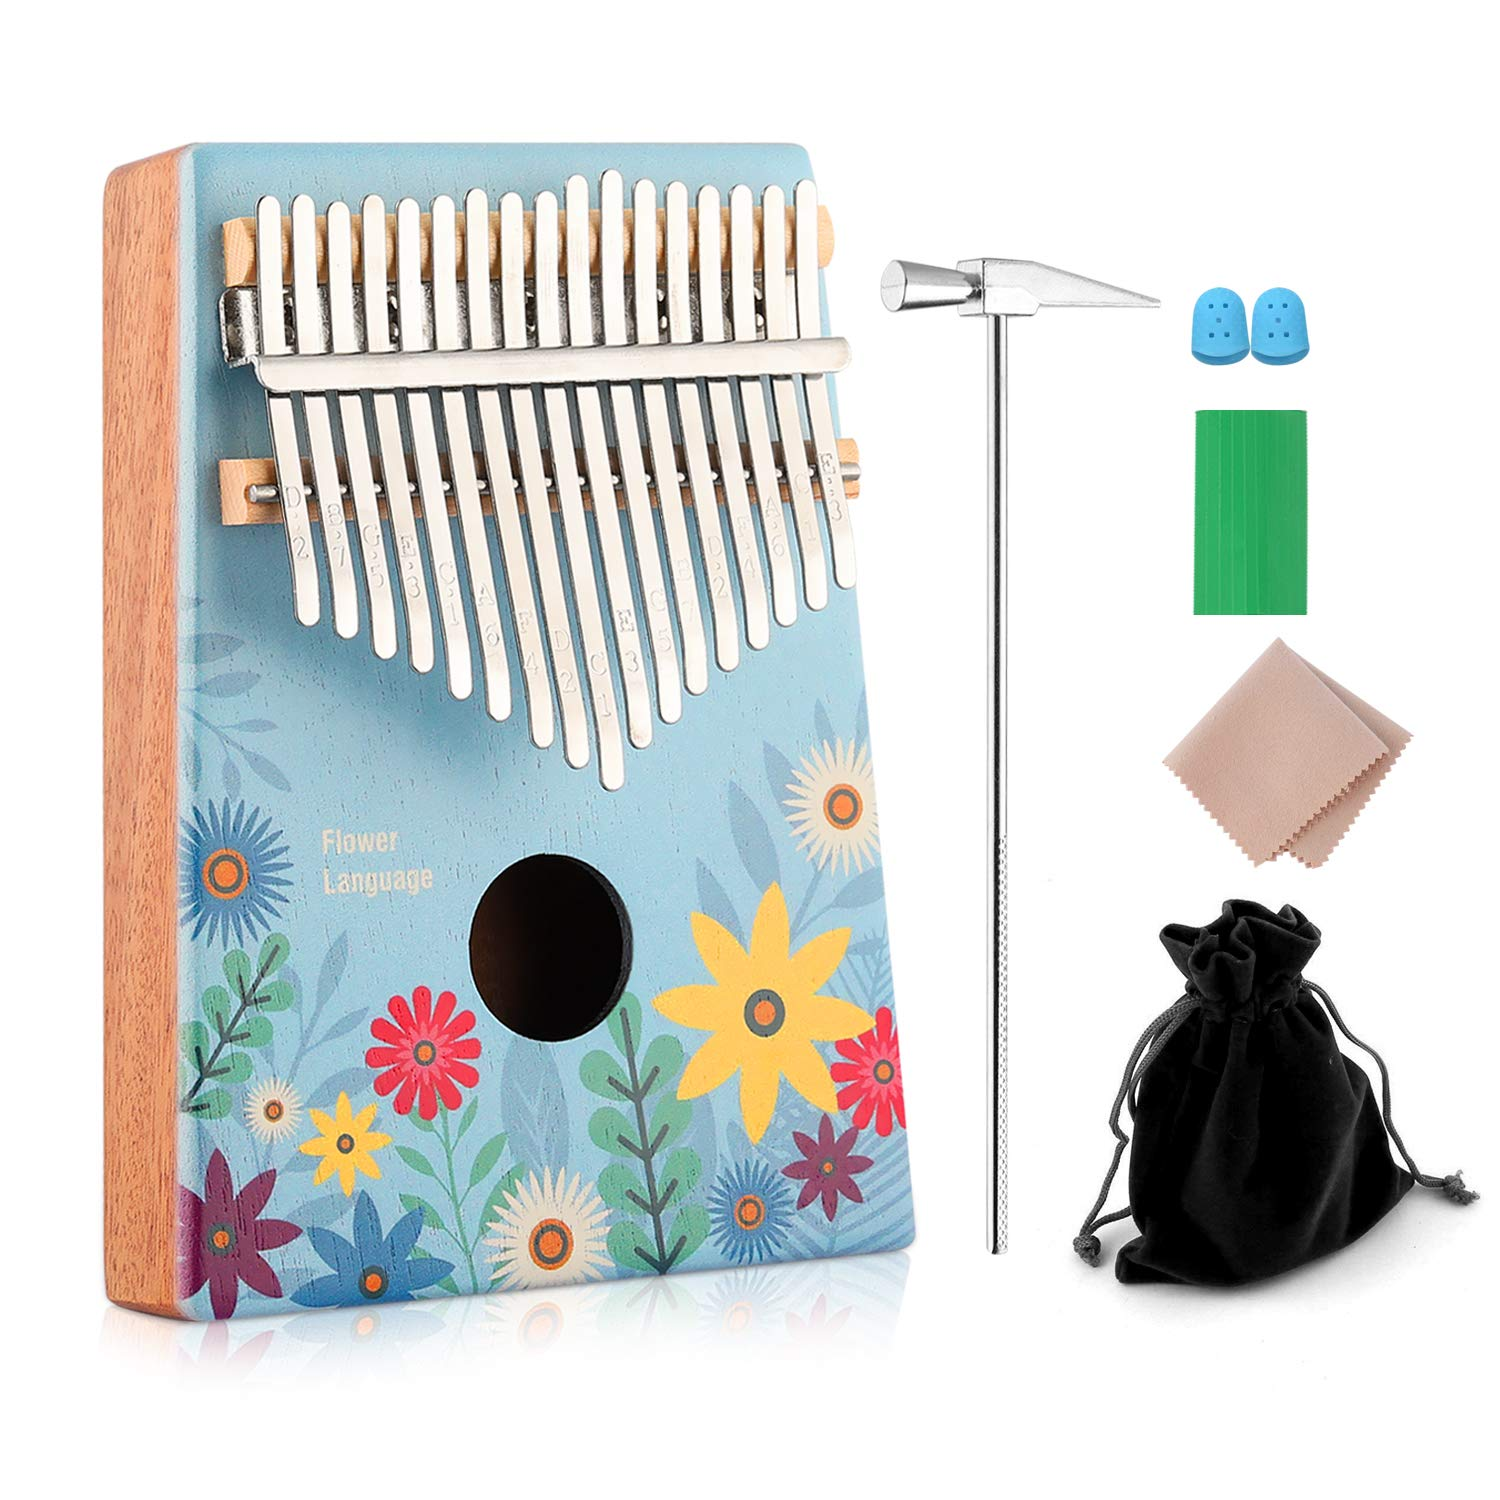 Kalimba 17 key Thumb Piano Finger Piano with Cloth Tuning Kit Hammer, Study Instruction Song Book, Hot Gift for Christmas 2018 Birthday Gifts for Kids, Children, Girlfriend (Full Bloom) by SANNA